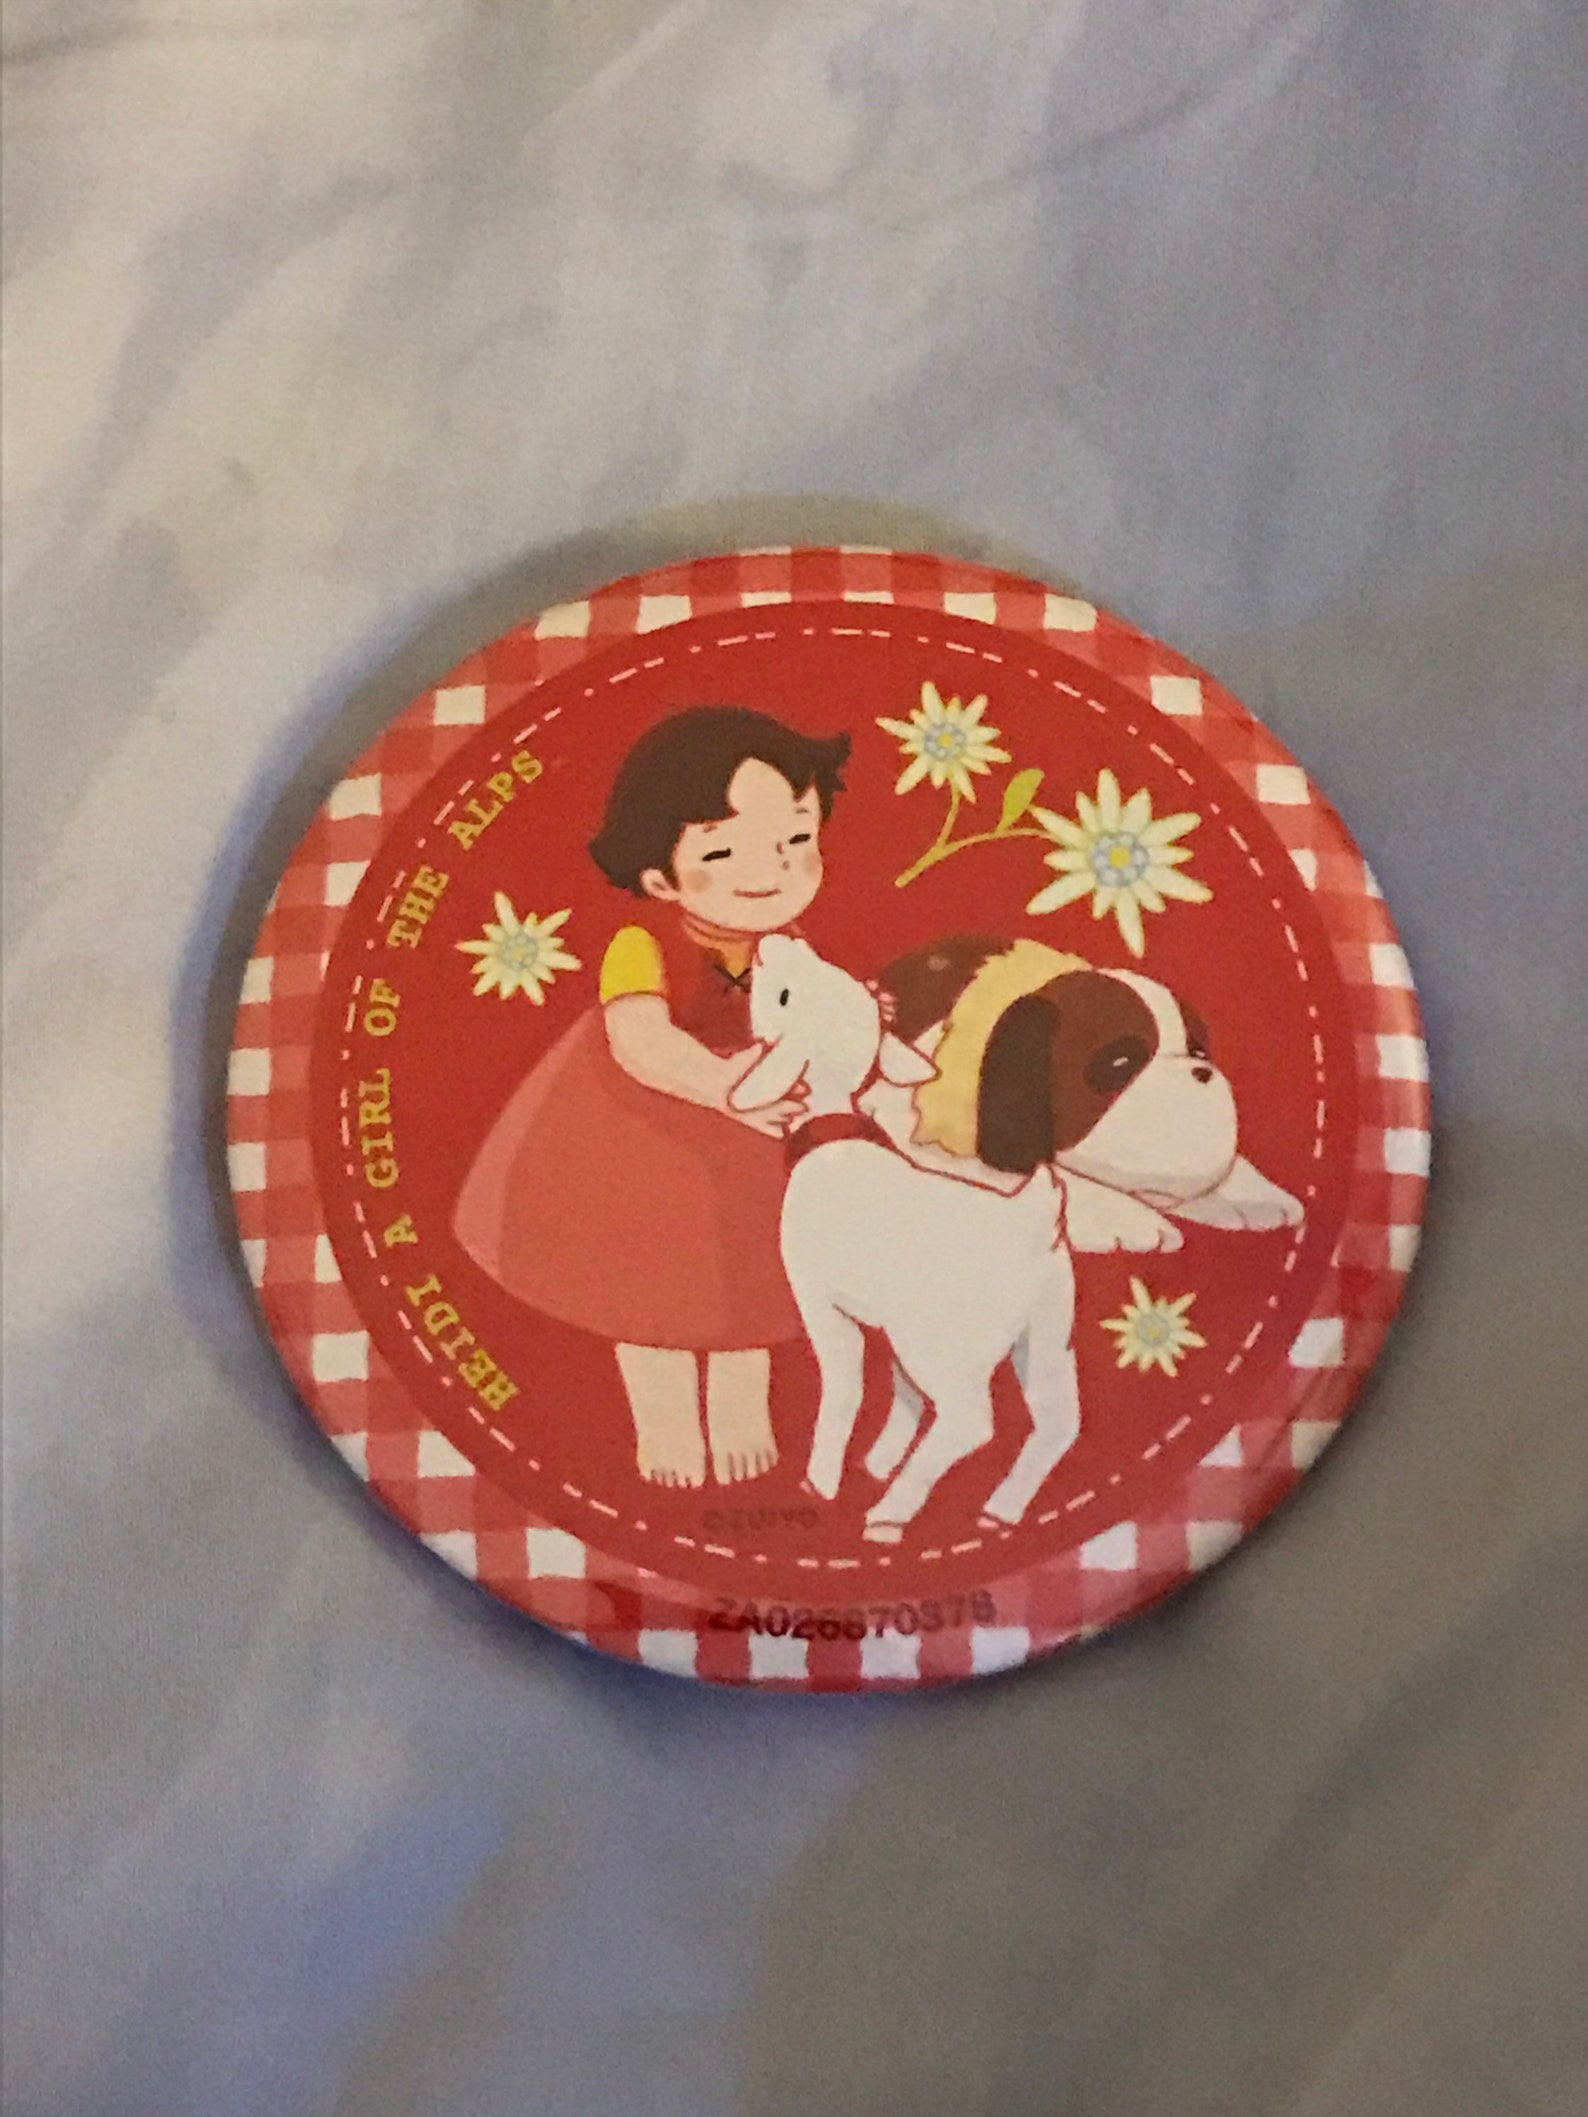 Heidi A Girl of the alps Pinback button from Japan